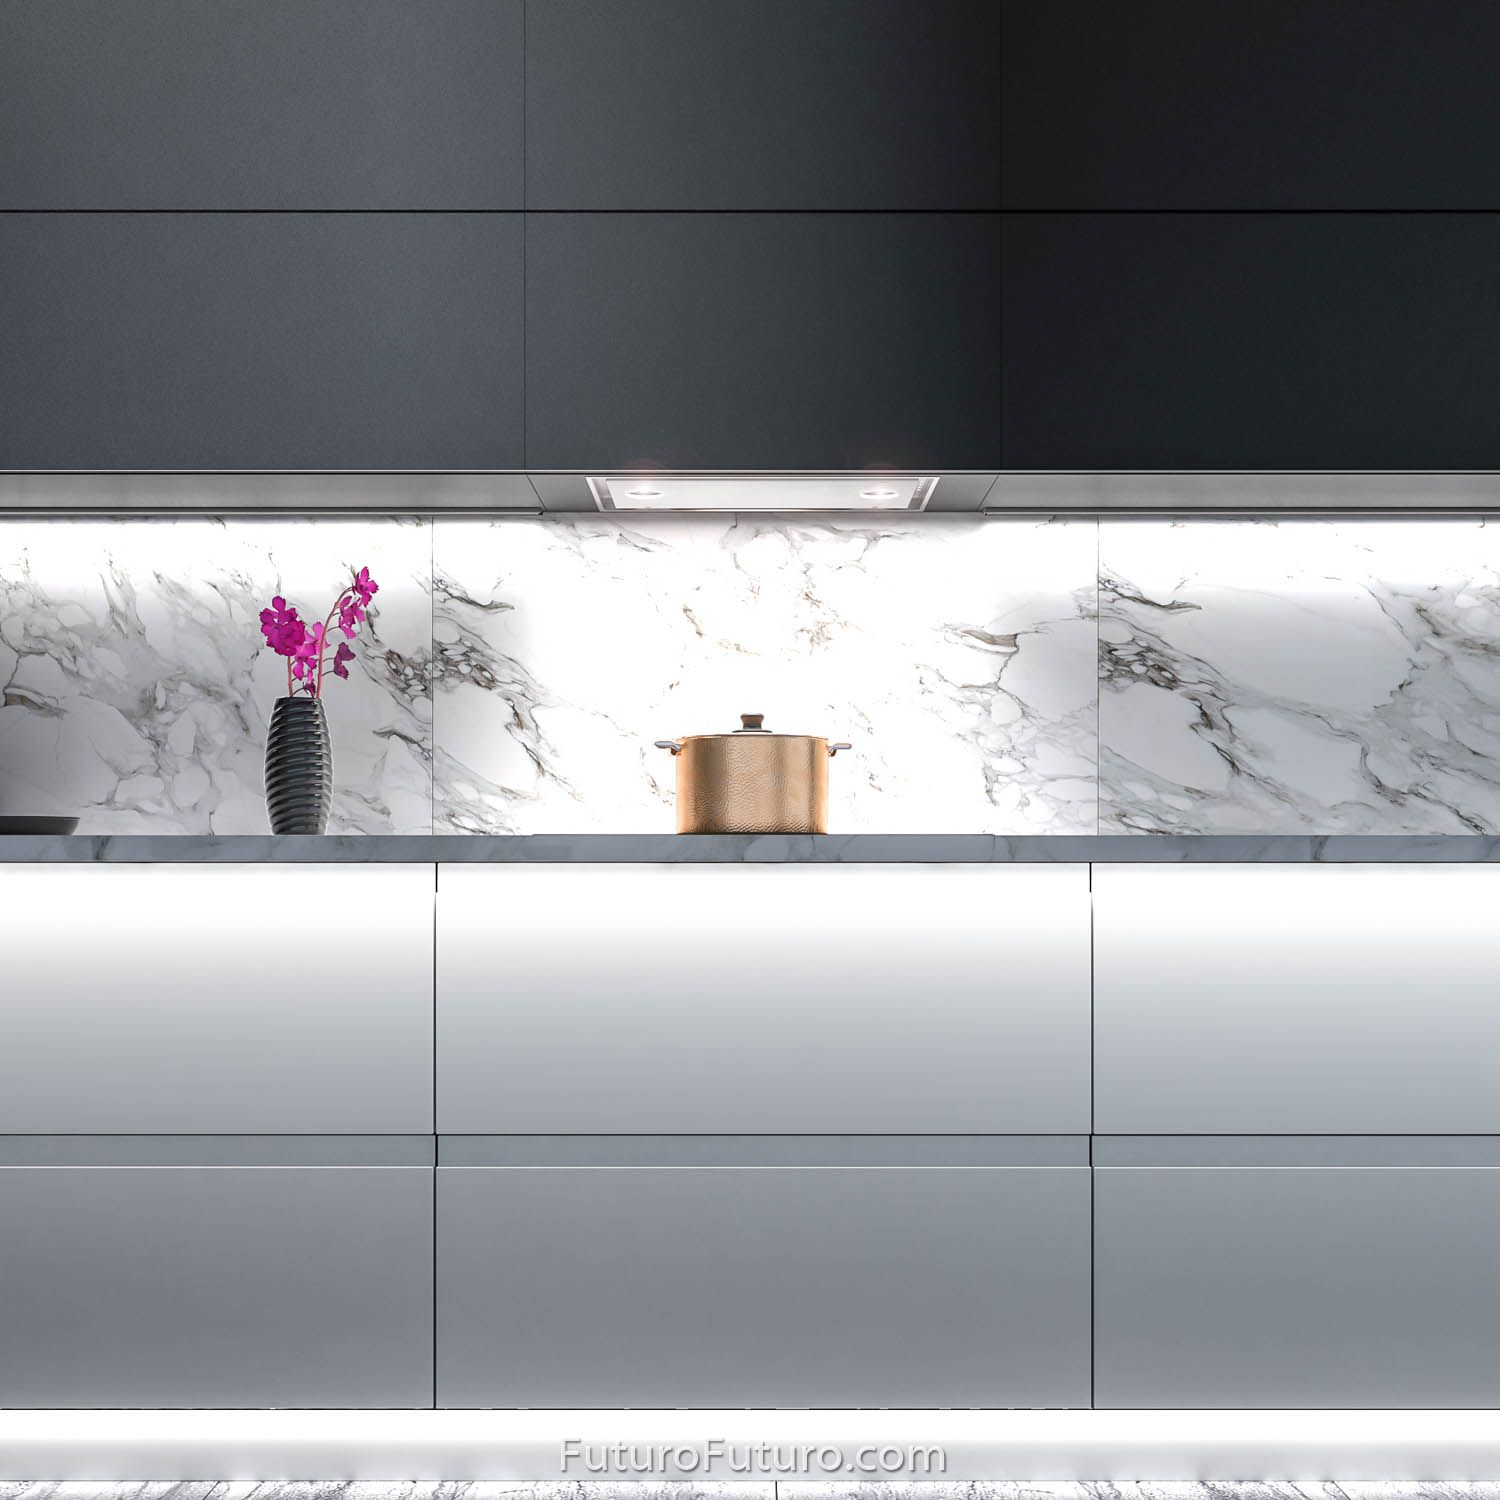 24 Raccolta Insert Designed For Kitchens Where A Minimal Clean Look Is Desired The Raccolta Series Of Ra With Images Range Hood Kitchen Vent Hood Kitchen Ventilation